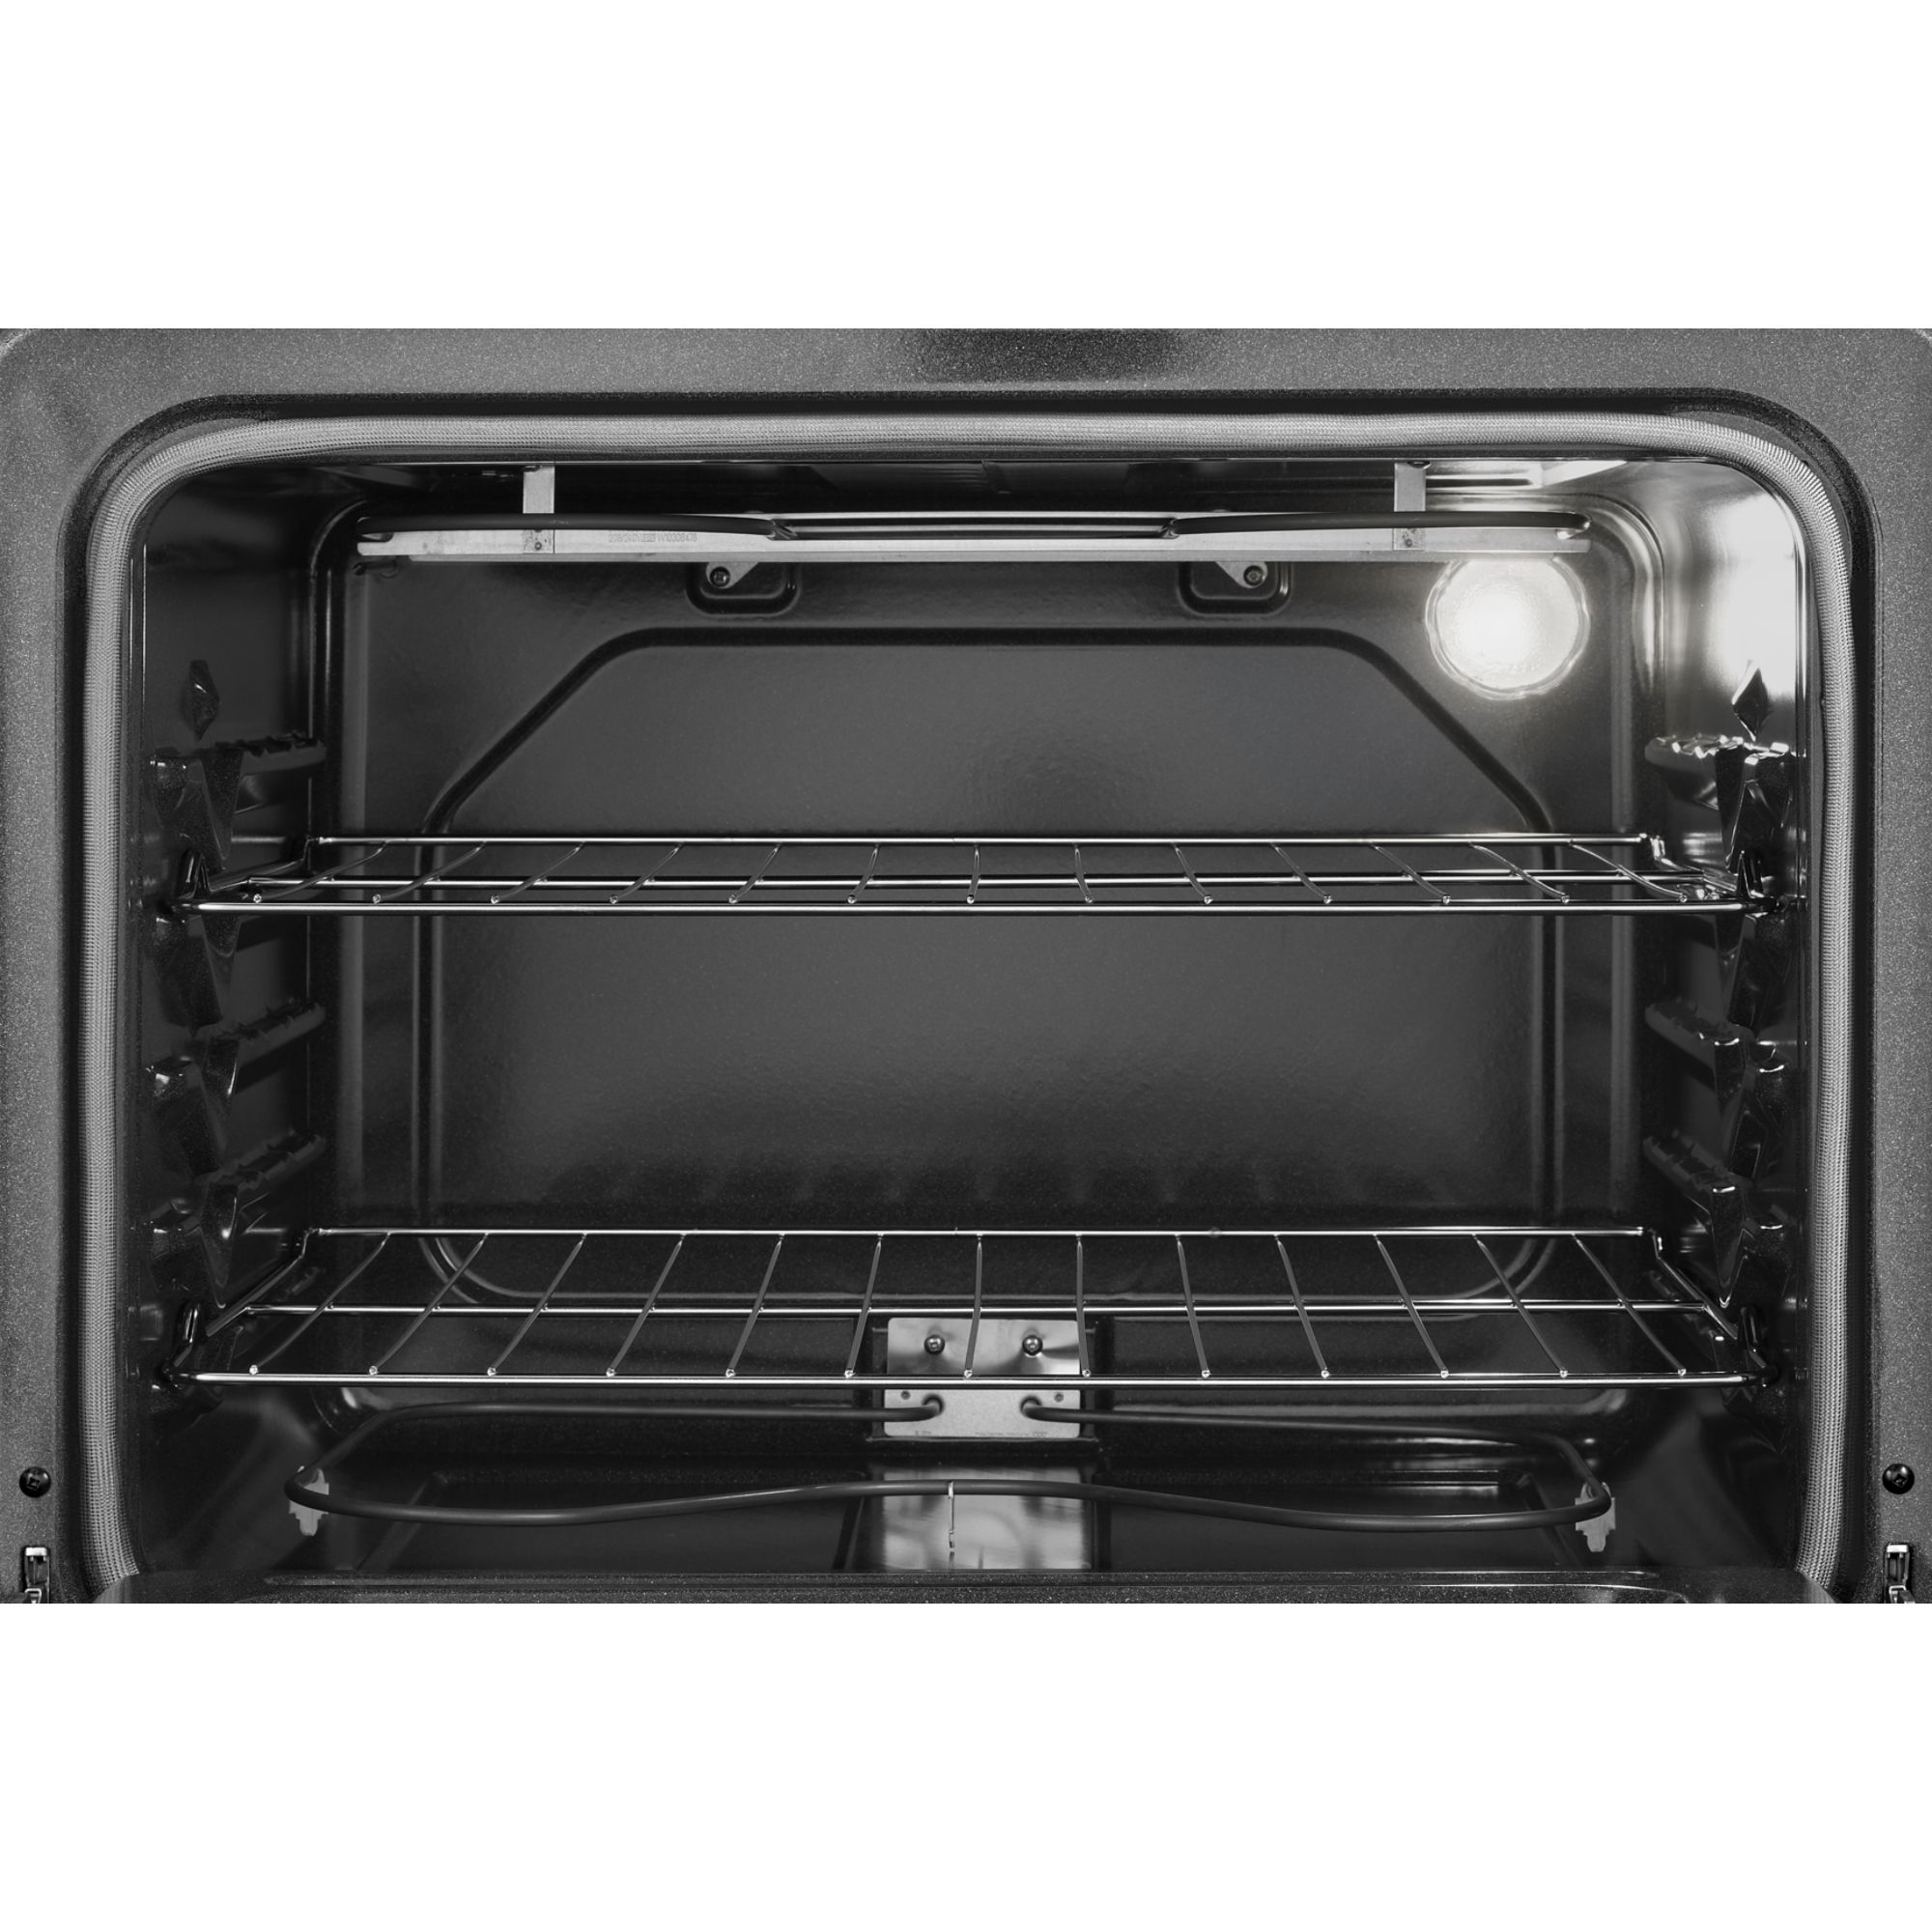 Whirlpool 4.8 cu. ft. Freestanding Electric Range w/ AccuBake® Temp. Management System - White WFC310S0AW